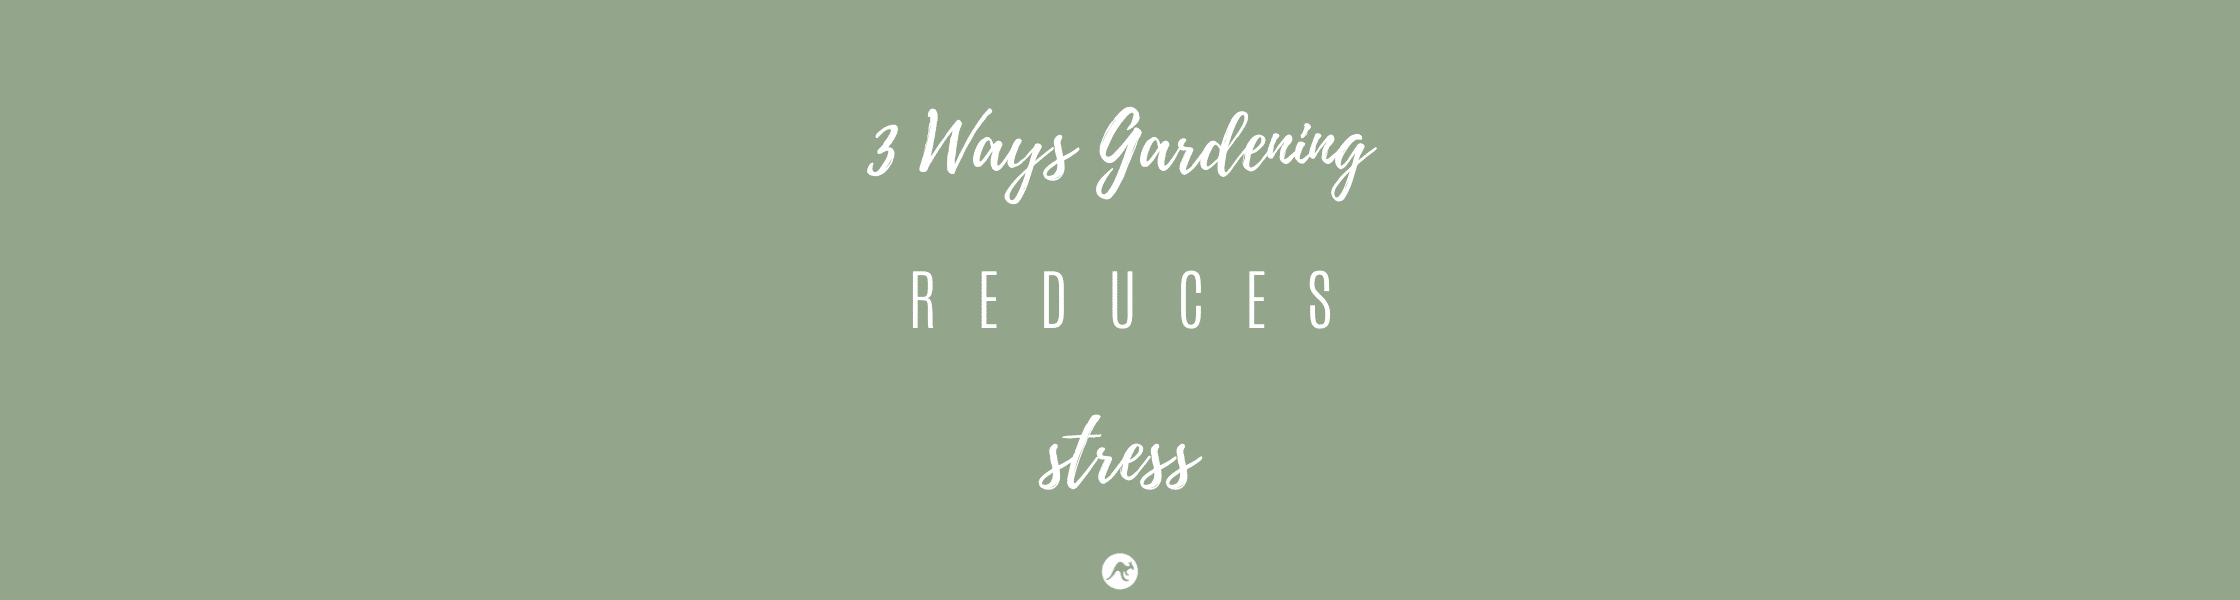 3 ways gardening reduces stress